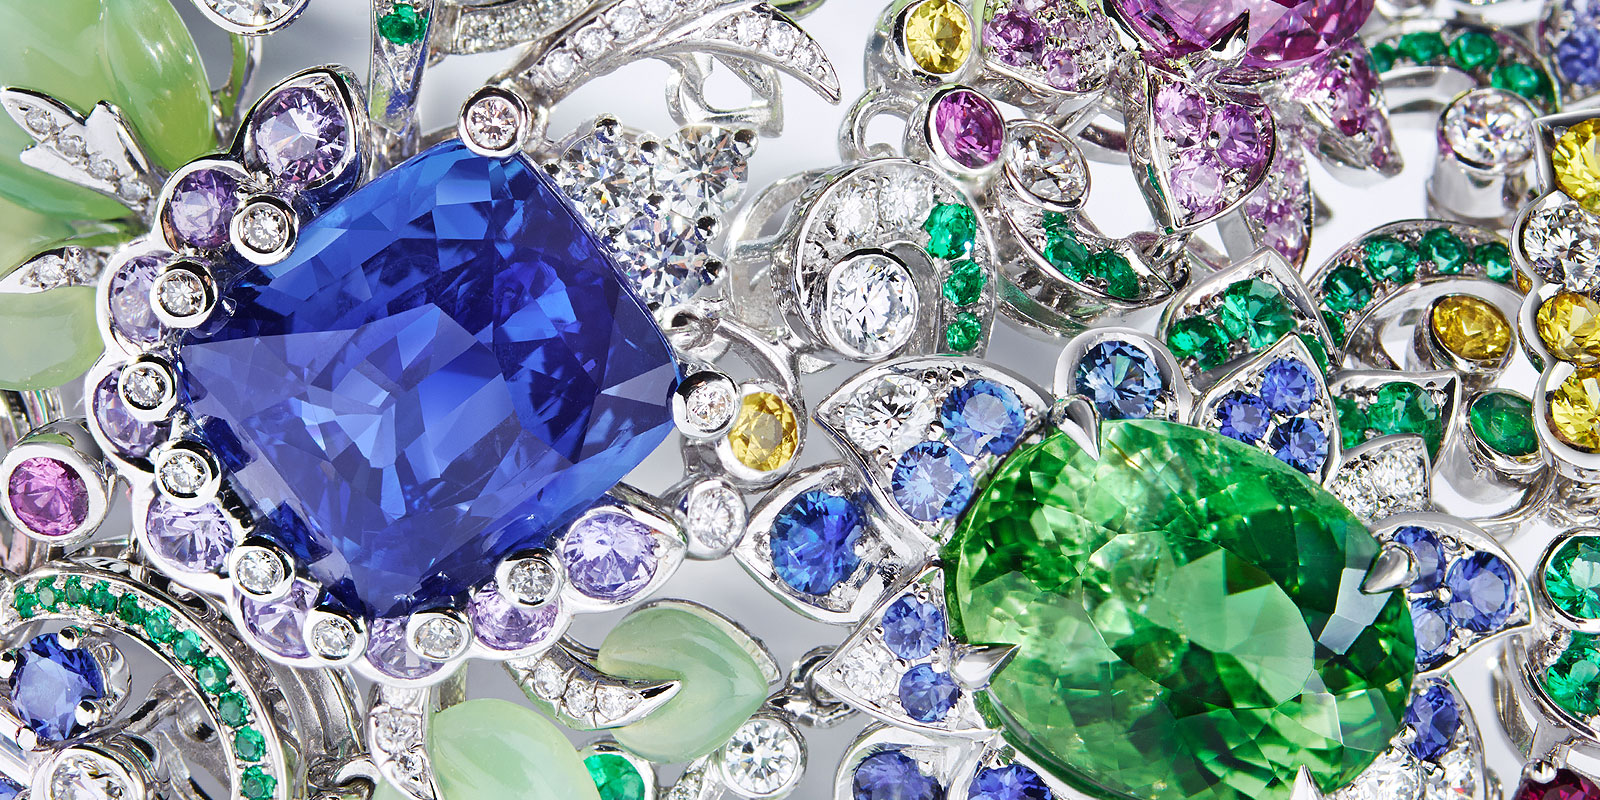 Close up image of faberge jewellery, featuring large and small multi-coloured gemstones